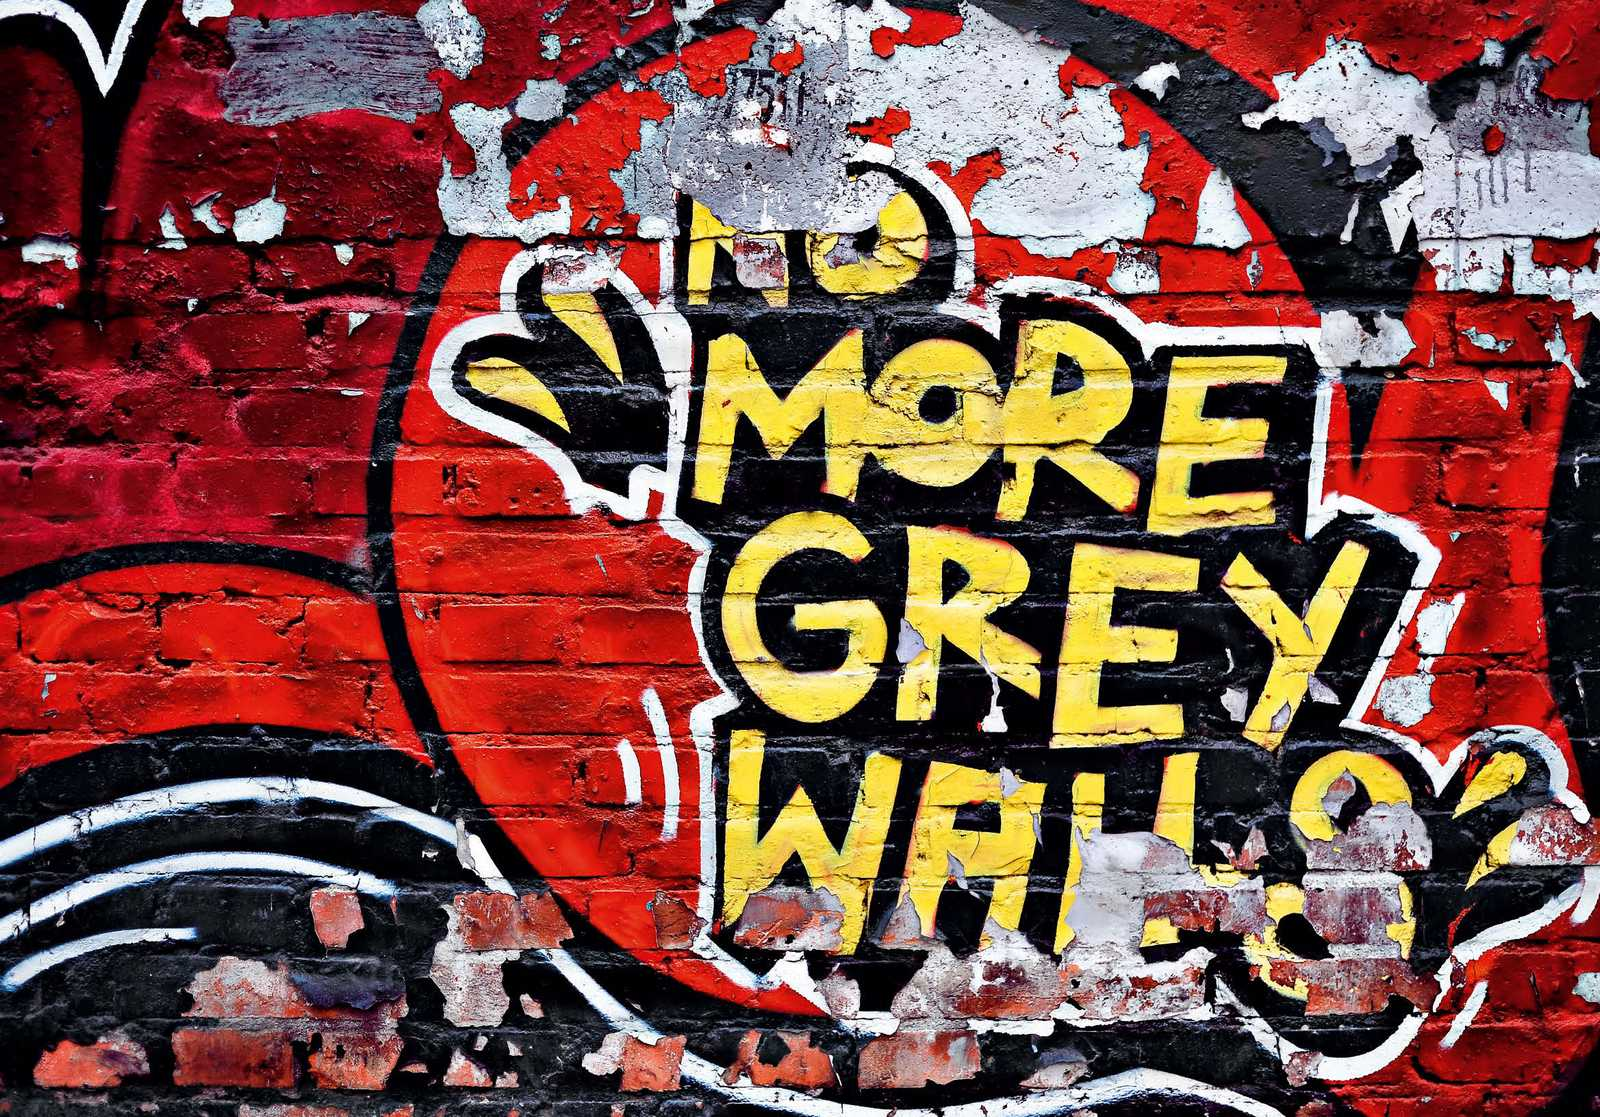 fototapete no more grey walls 366x254 strahlendes graffiti backstein mauer wand ebay